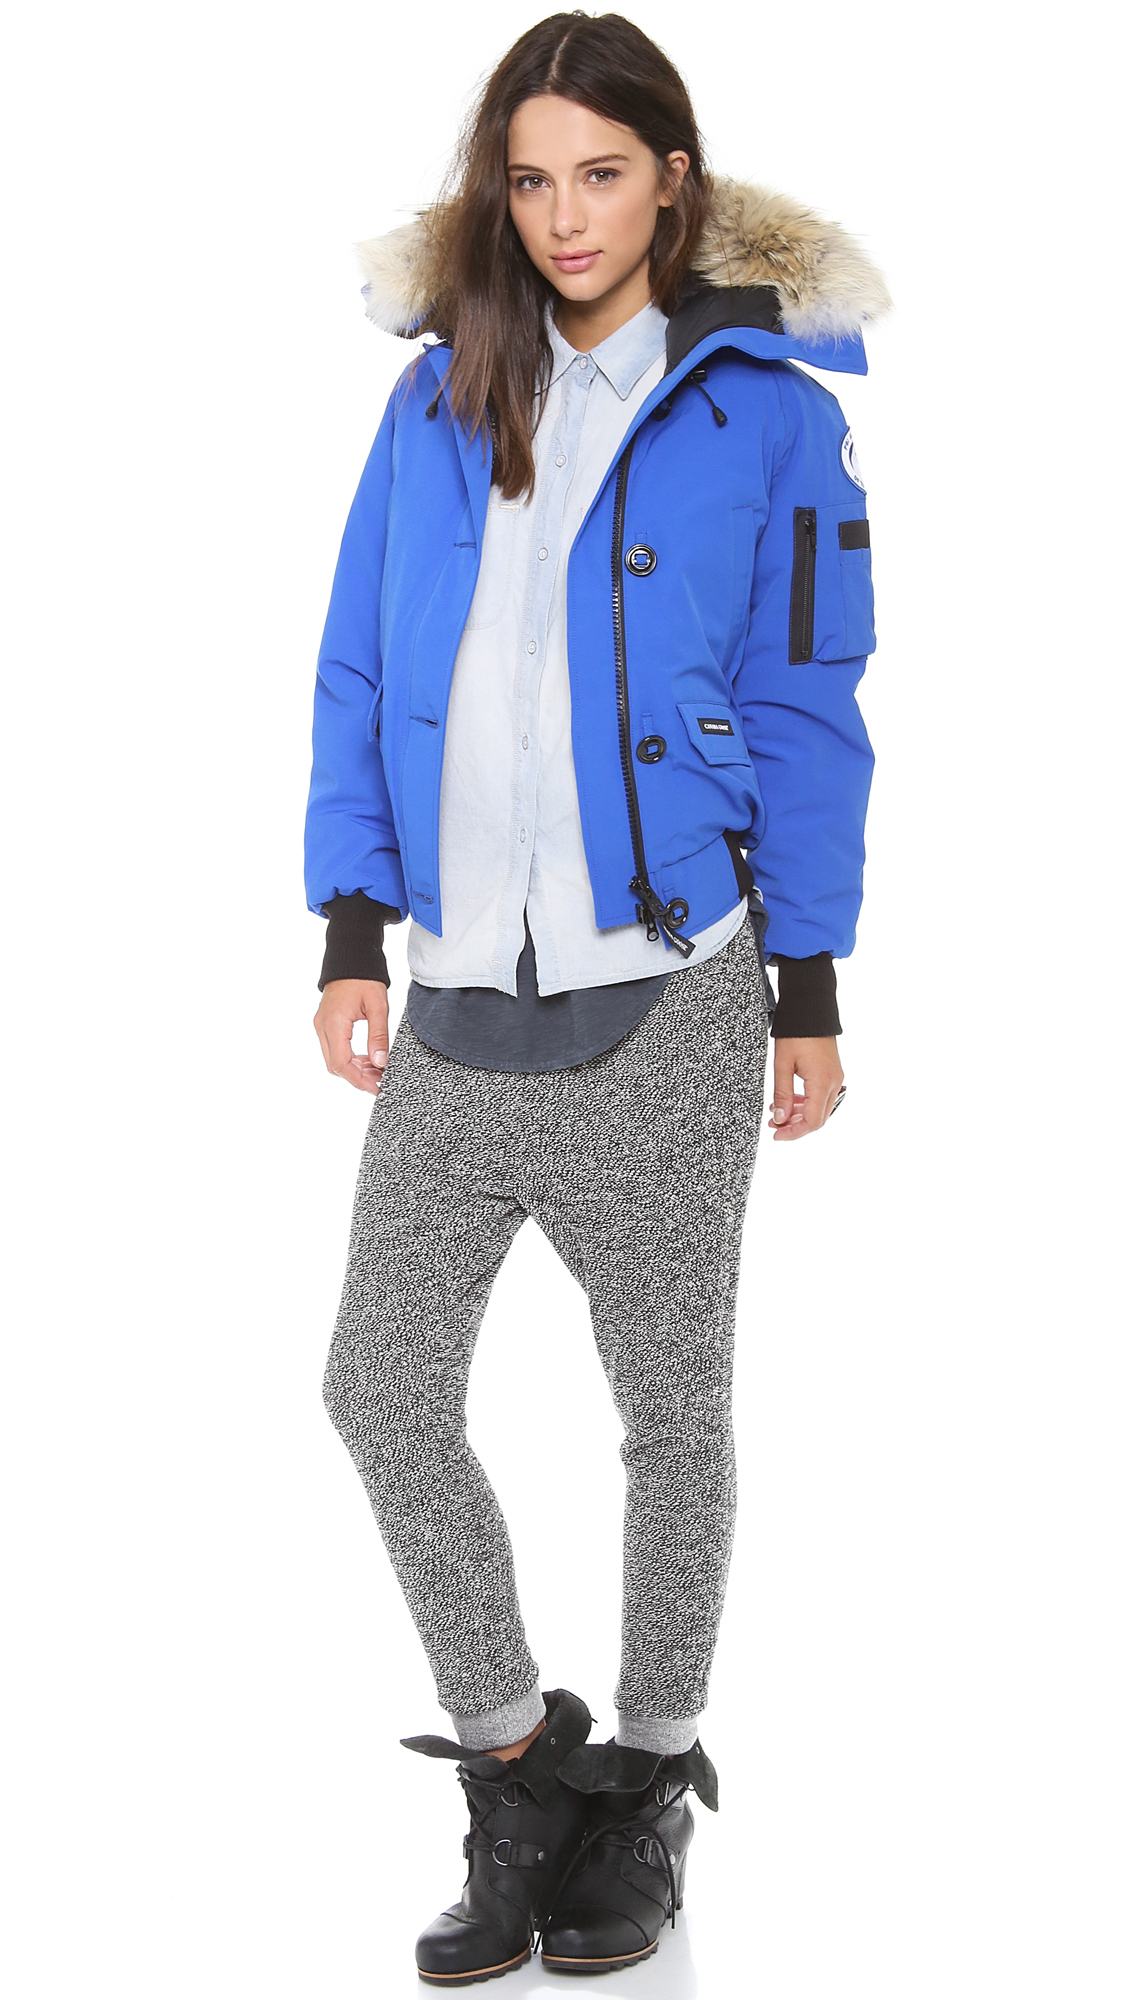 Canada Goose chilliwack parka outlet price - Canada goose Polar Bears Chilliwack Bomber Jacket - Pbi Blue in ...